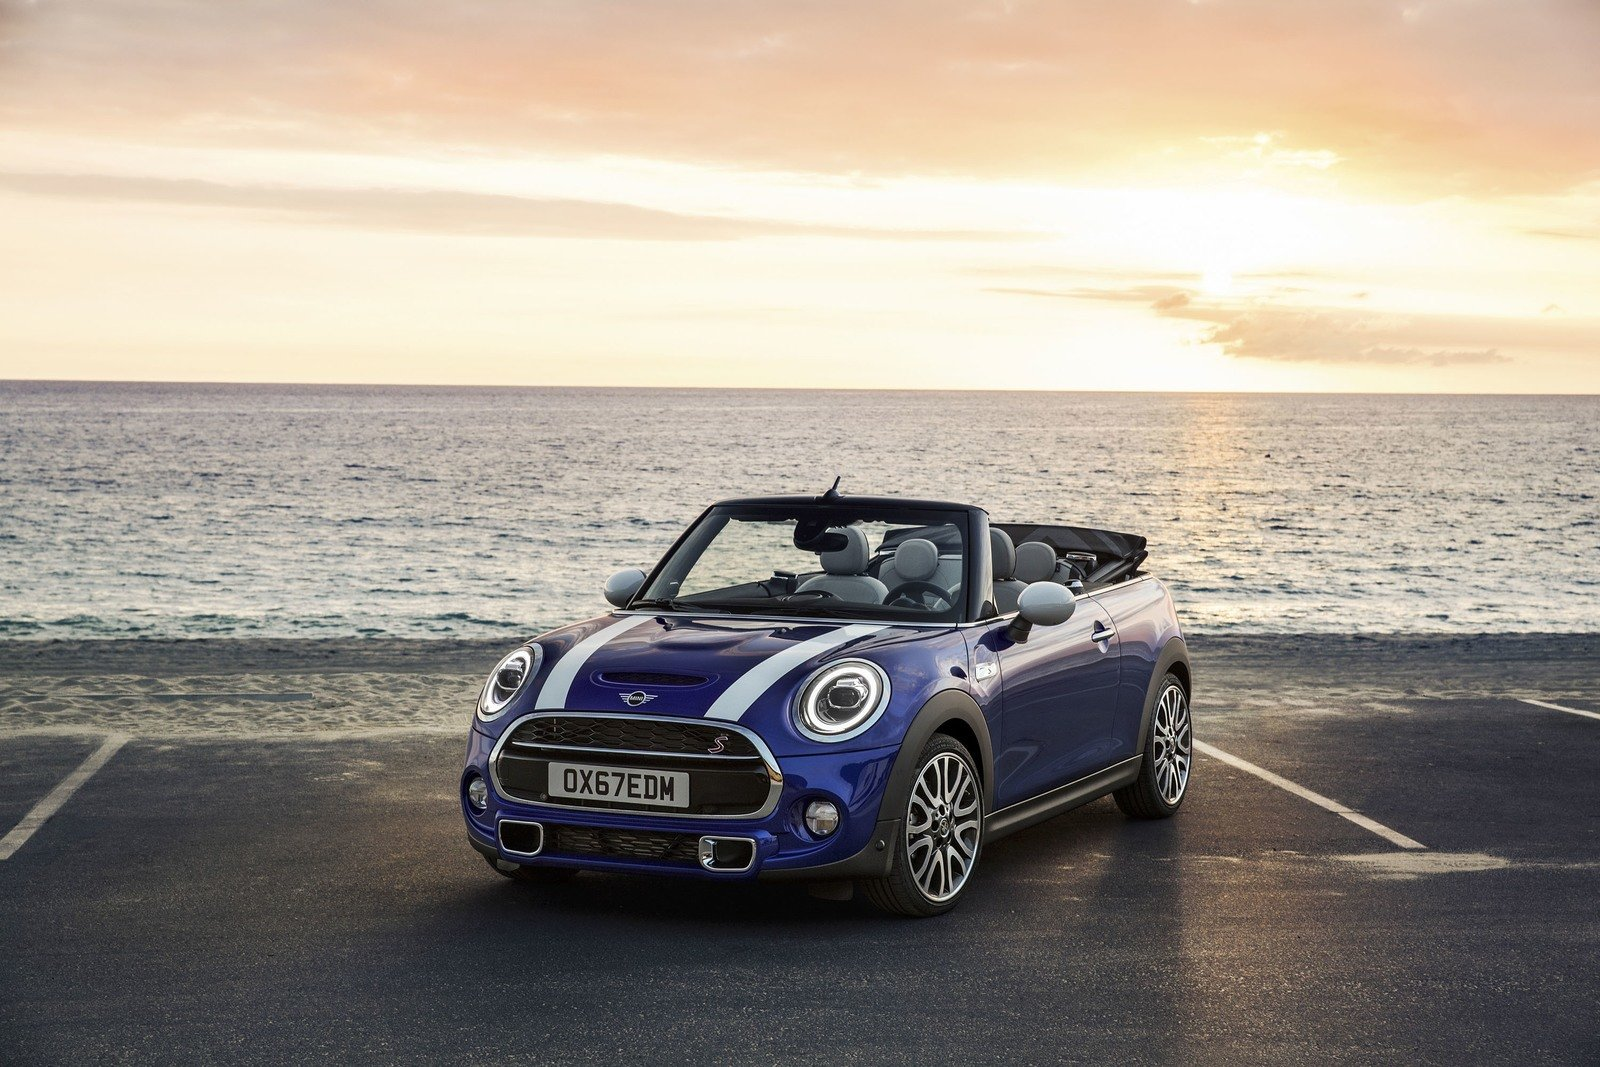 2016 Cadillac Convertible >> Wallpaper Of The Day: 2019 Mini Cooper Cabriolet | Top Speed